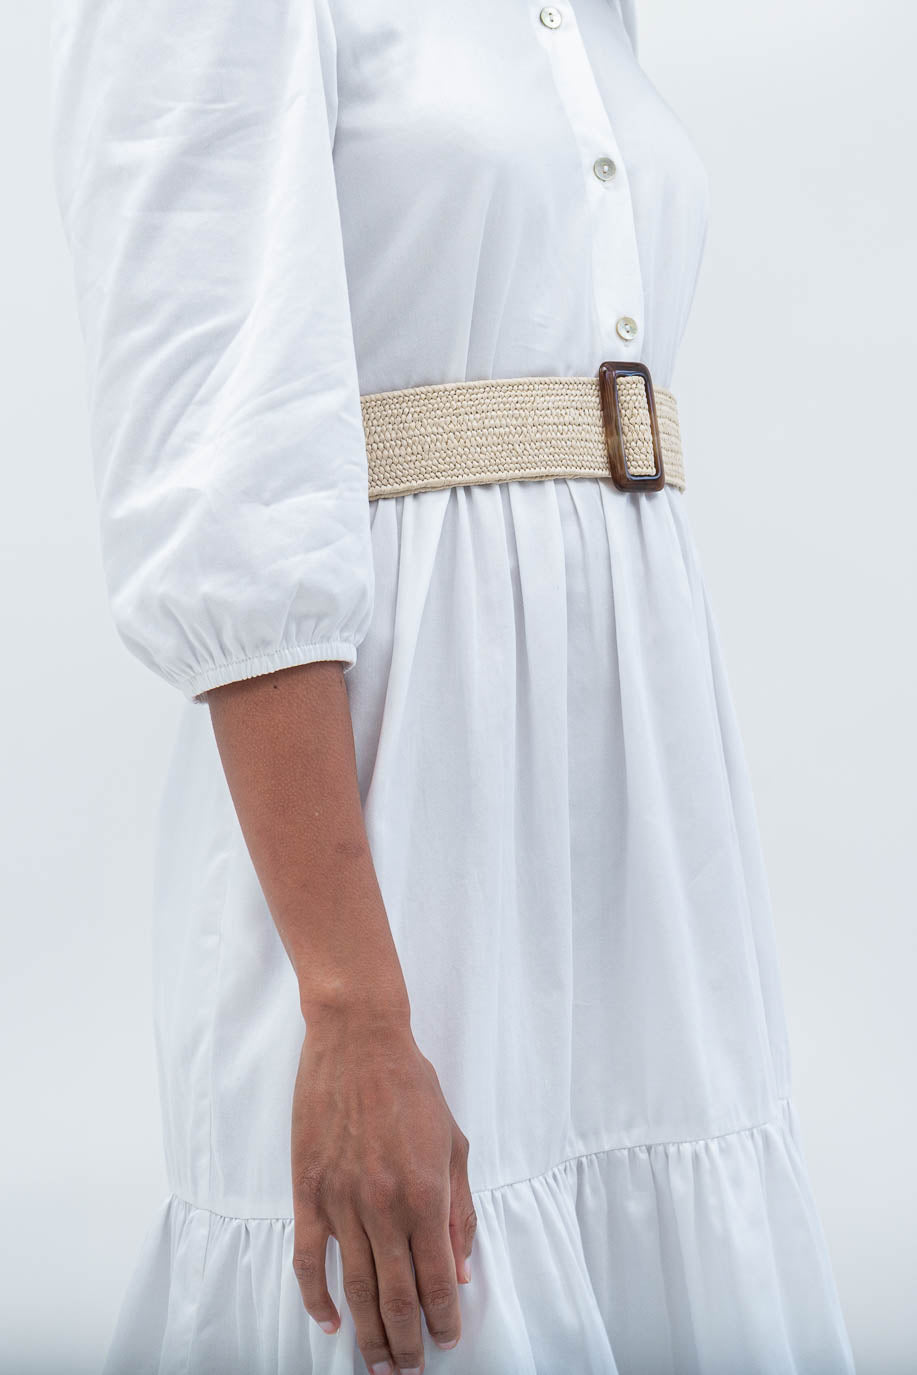 SF Woven Belt - Sarah Feldman Modest Clothing